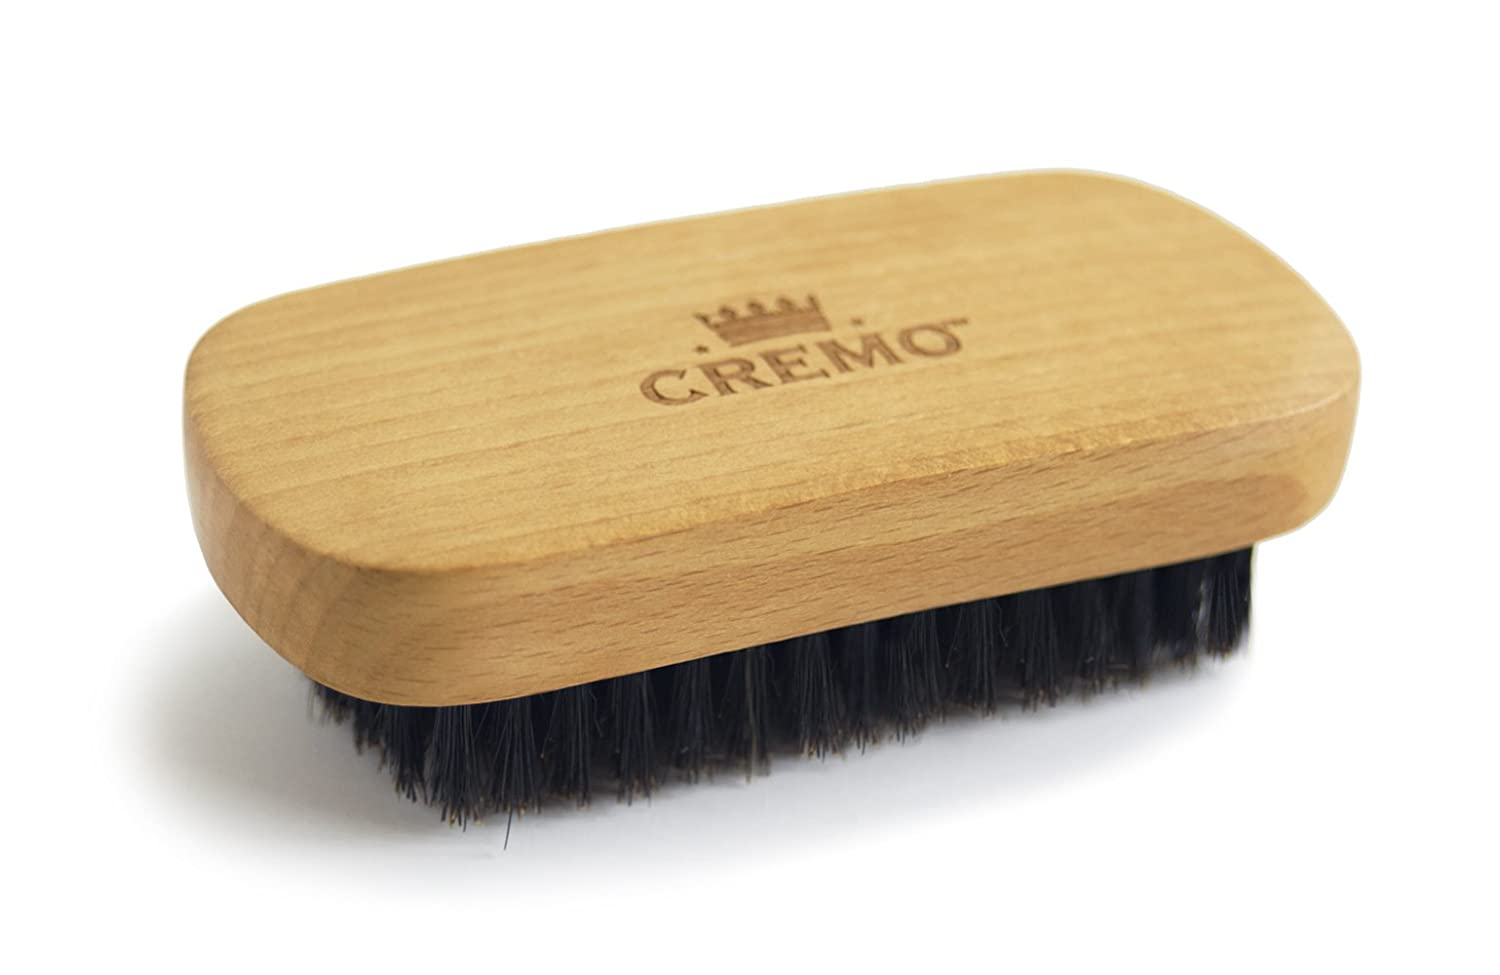 Cremo 100 Boar Bristle Beard Brush With Wood Handle To Shape Style And Groom Any Length Facial Hair